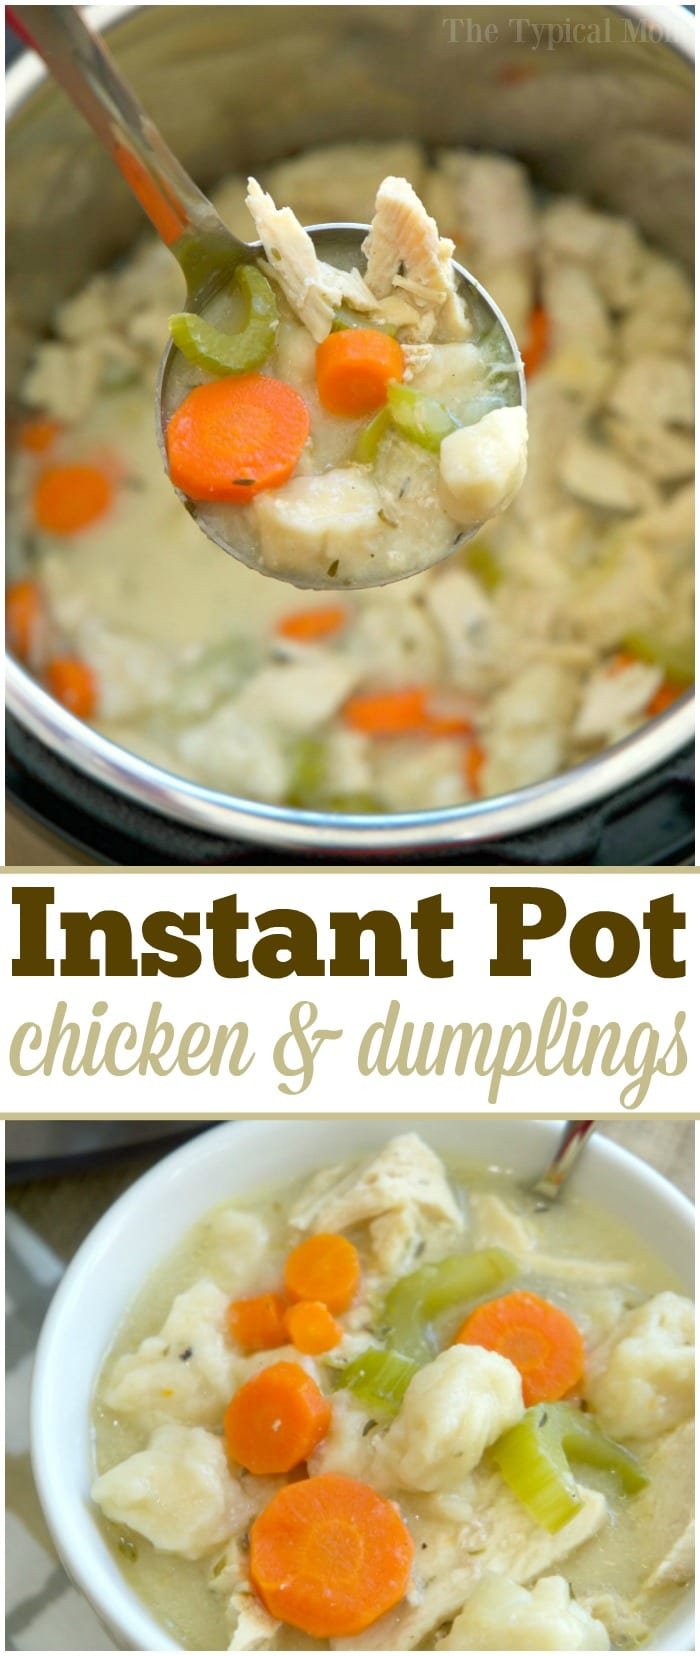 This easy Instant Pot chicken and dumplings recipe is so yummy!i Takes just 20 minutes to make the best pressure cooker chicken recipe ever. The ultimate comfort food made in no time at all and a complete meal all wrapped up in one. #instantpot #pressurecooker #chickenanddumplings #chicken #soup #dumplings